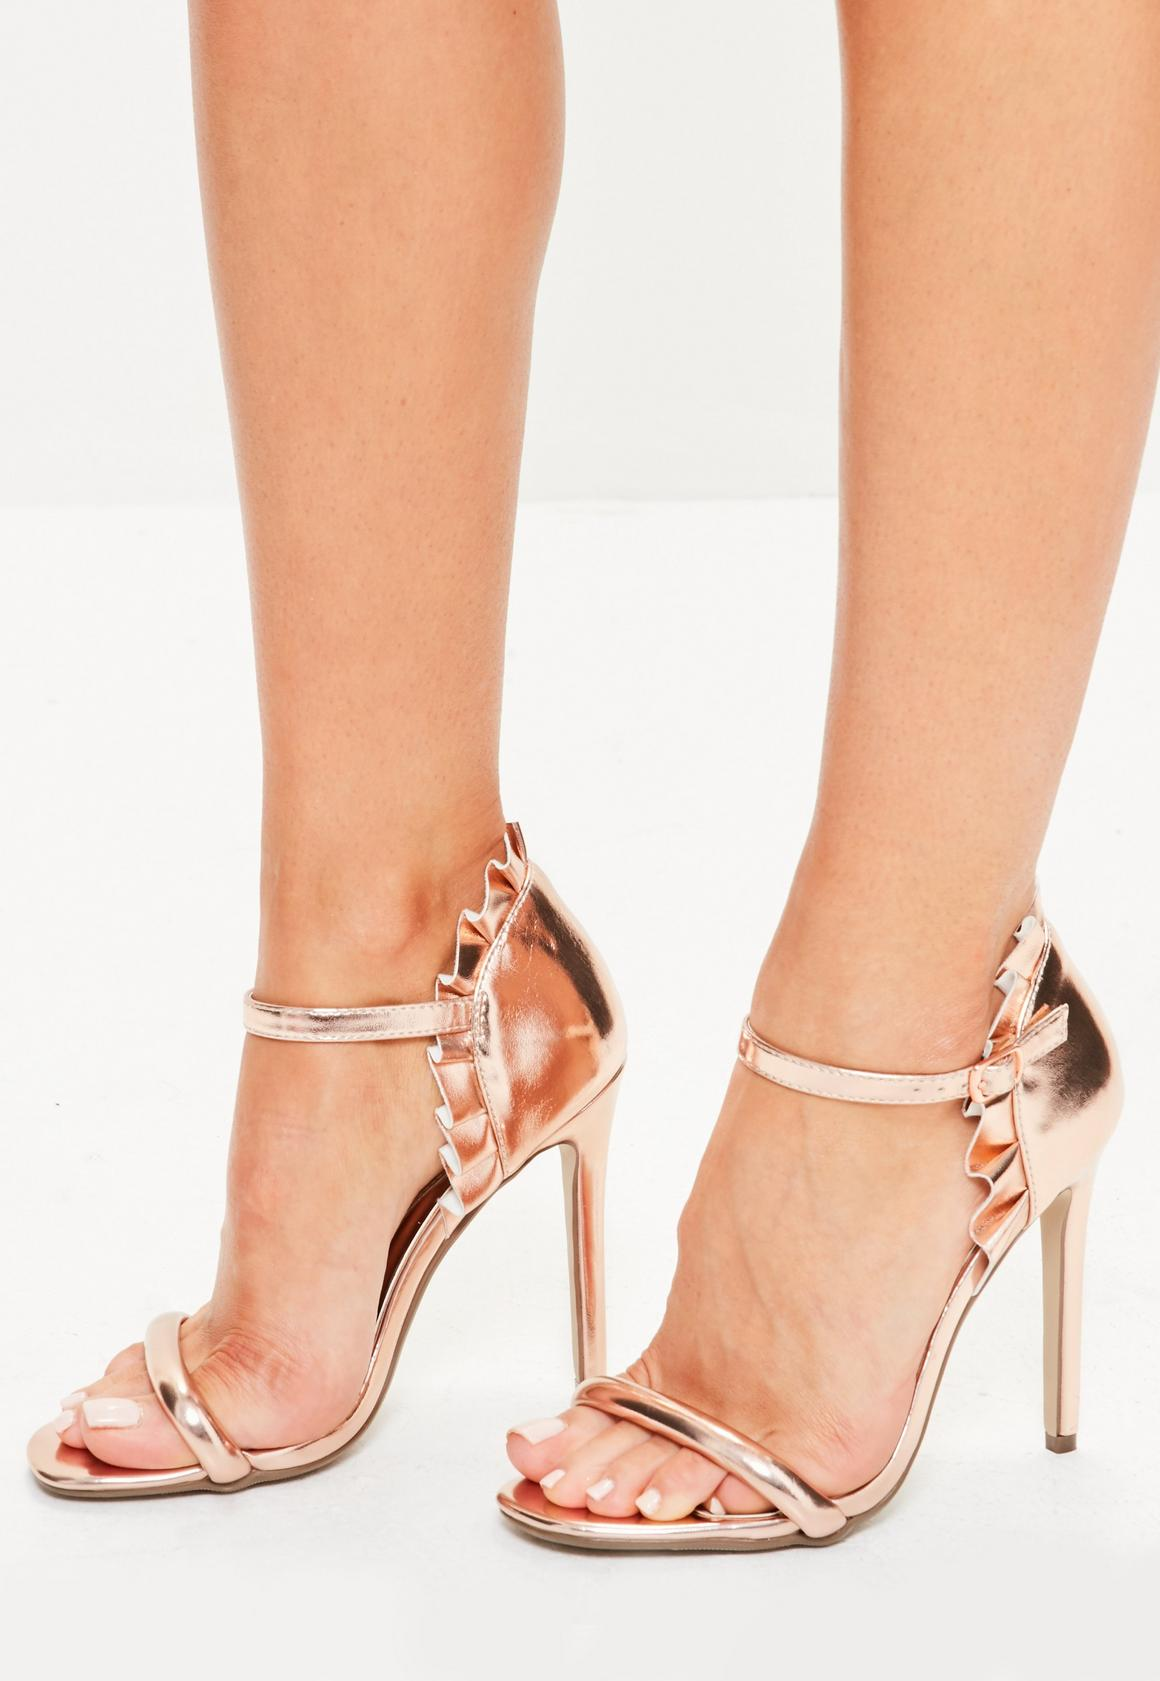 Rose Gold Ruffle Back Strappy Sandals | Missguided Australia